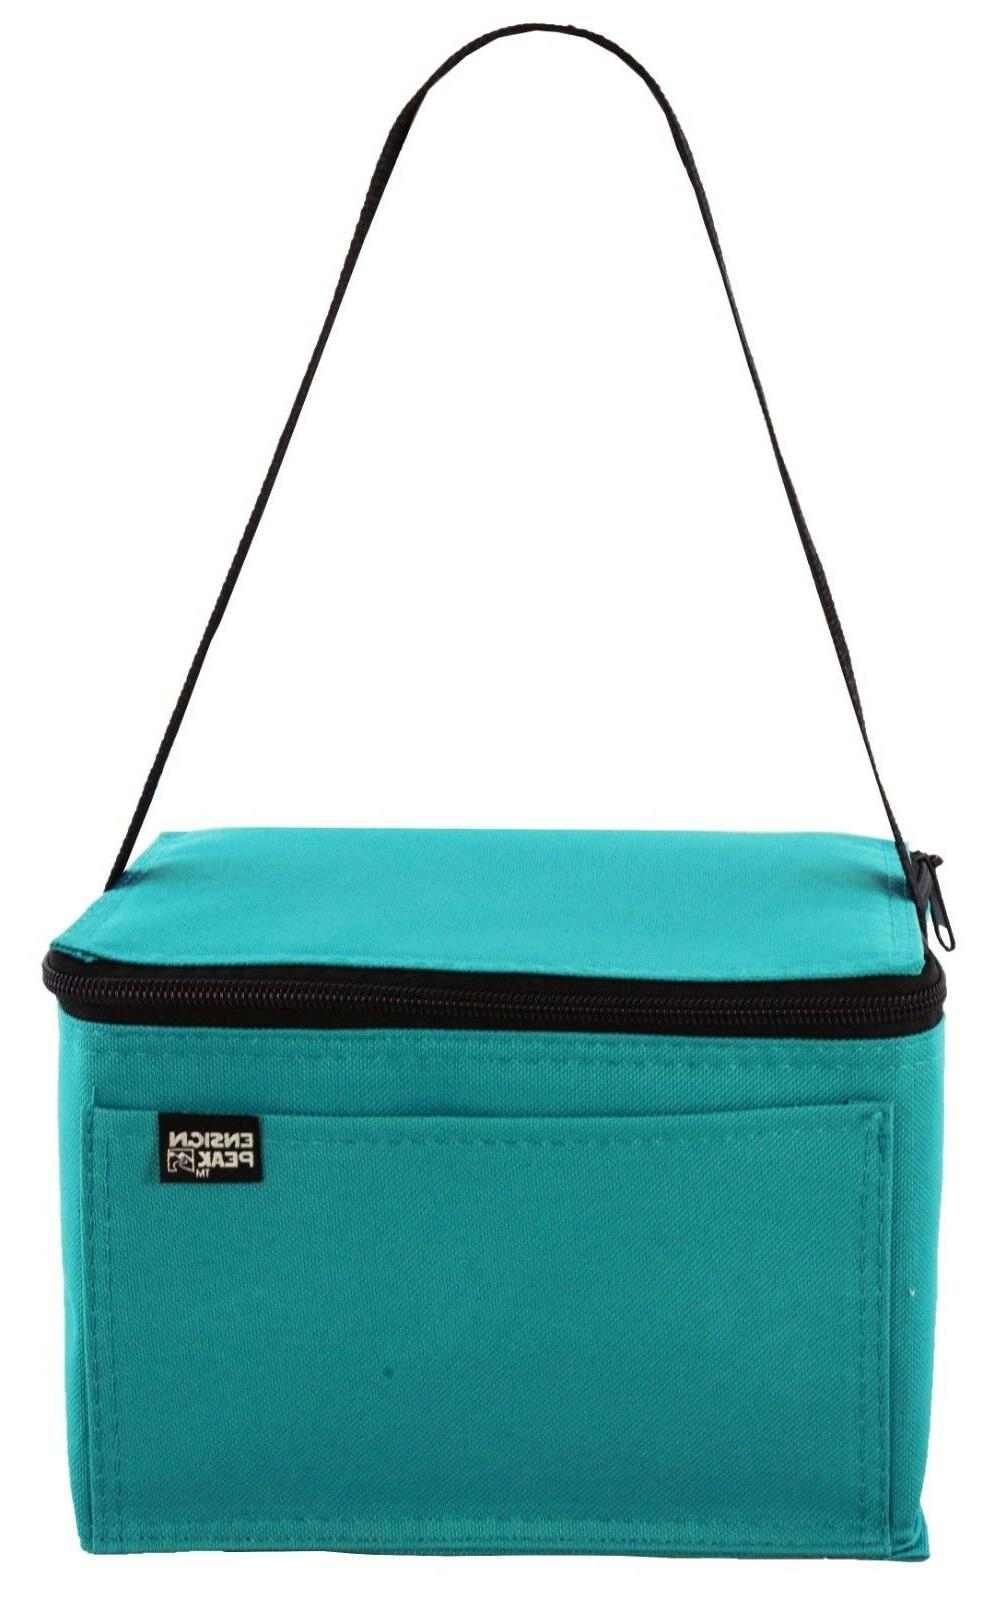 Ensign Peak Basic Insulated Cooler with Proof